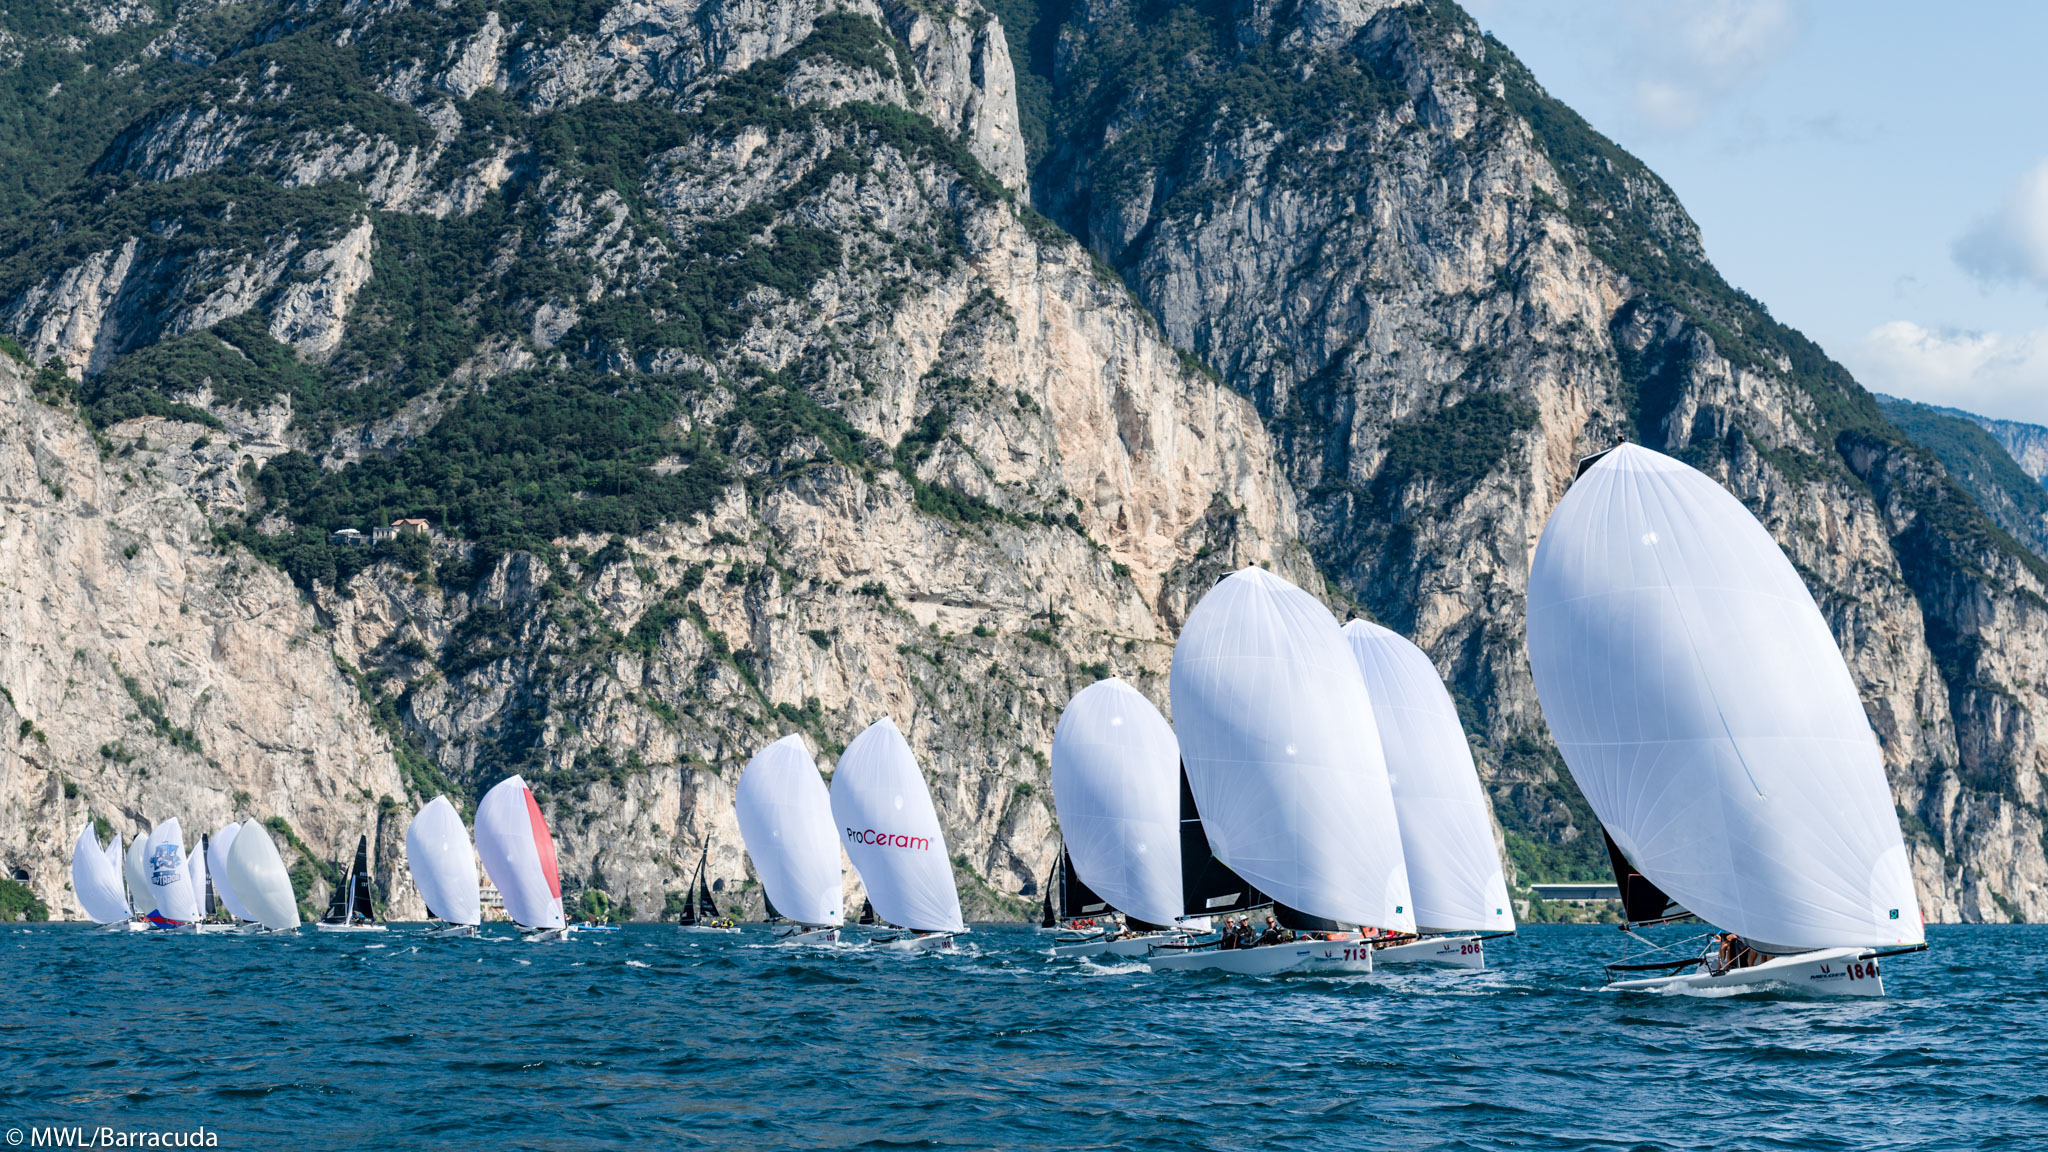 RIVA DEL GARDA July 12-14 - The winner is SIDERVAL!!!RESULTSPHOTO GALLERY